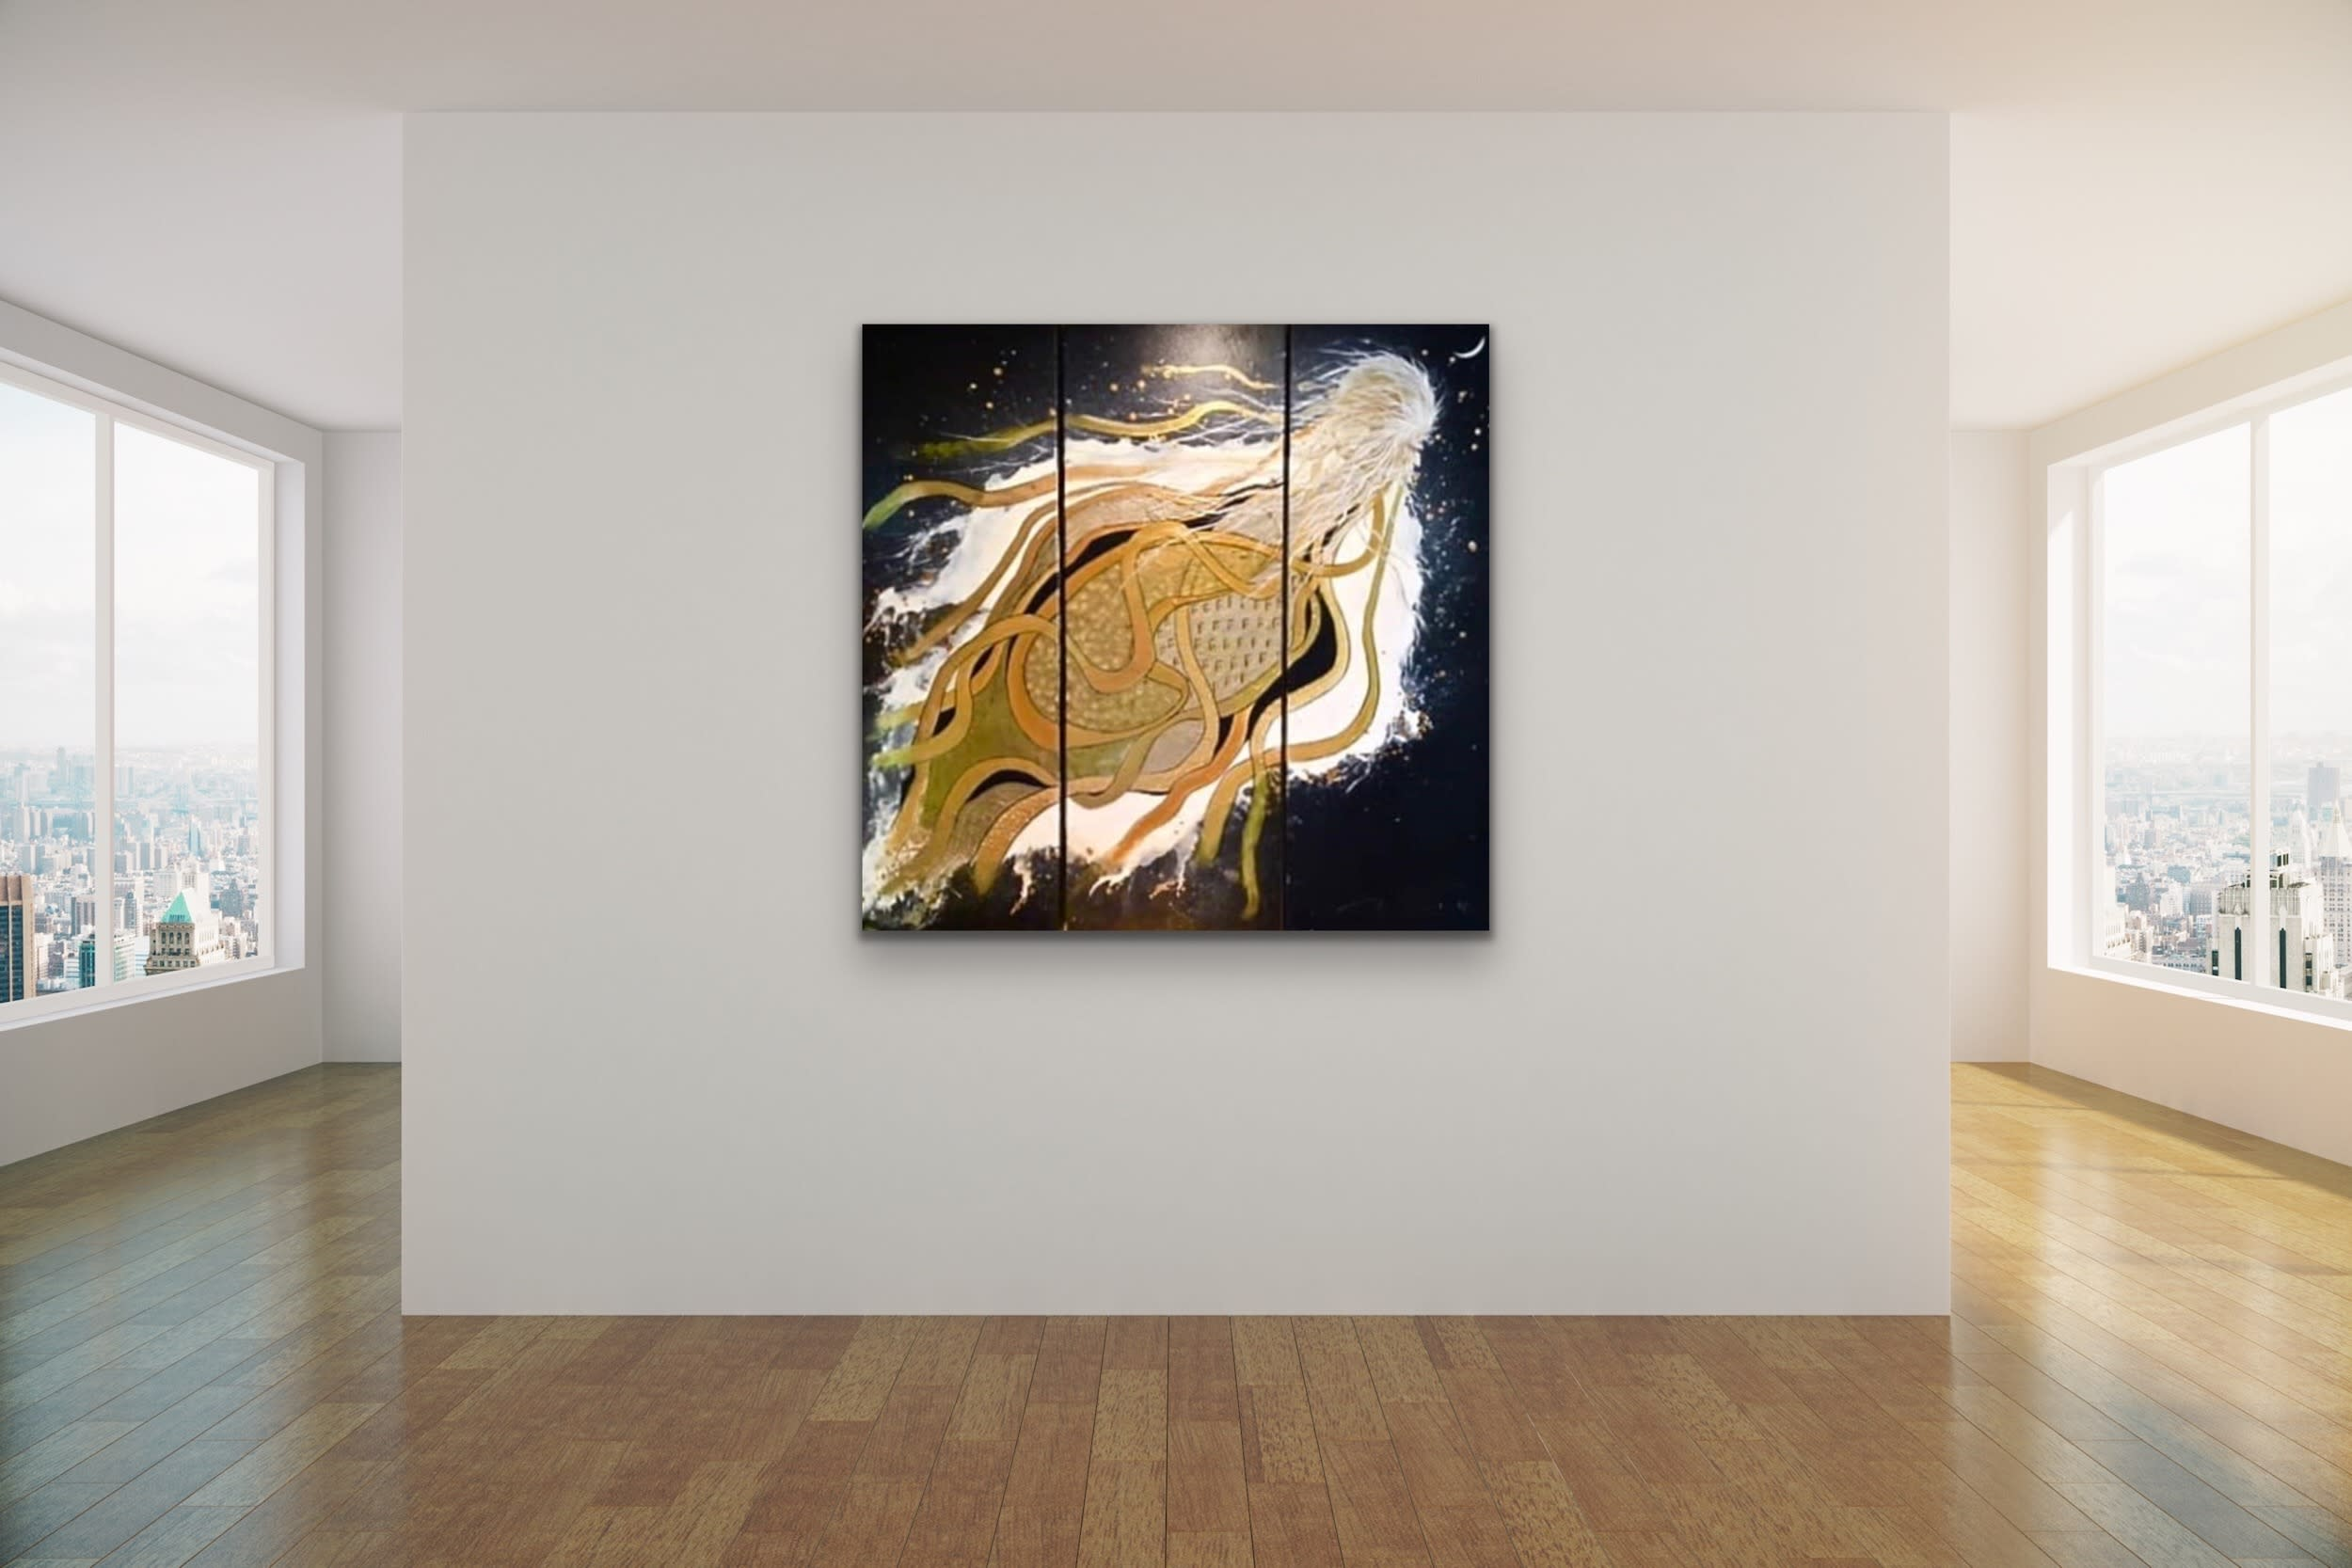 <div class='title'>           Robert Romeo Tomei Mock Up Gallery Wall Art Rooms Preview Clean Abstract Evo Art Lahaina Maui Front Street 14         </div>